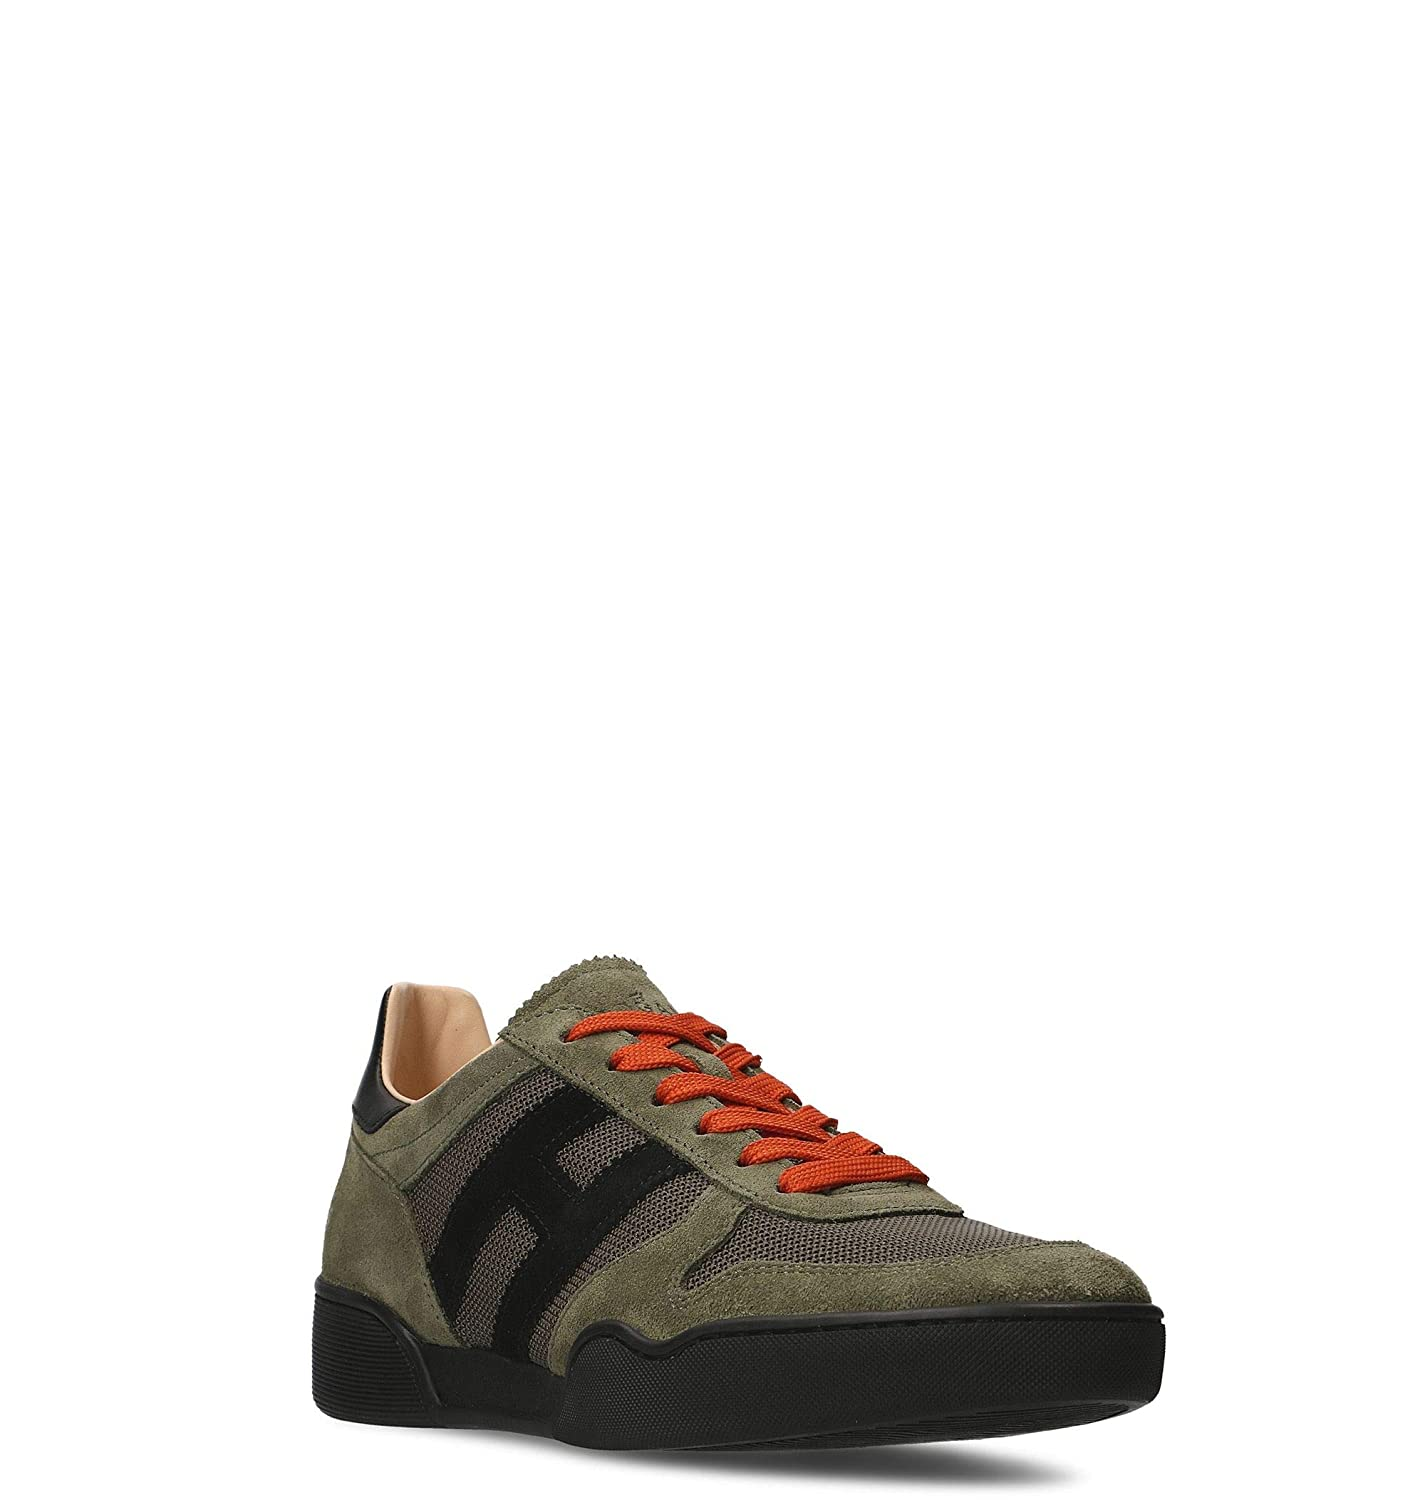 a20f0b199dfd7 Amazon.com | HOGAN Men's HXM3570AC40IPJ558L Green Suede Sneakers | Fashion  Sneakers